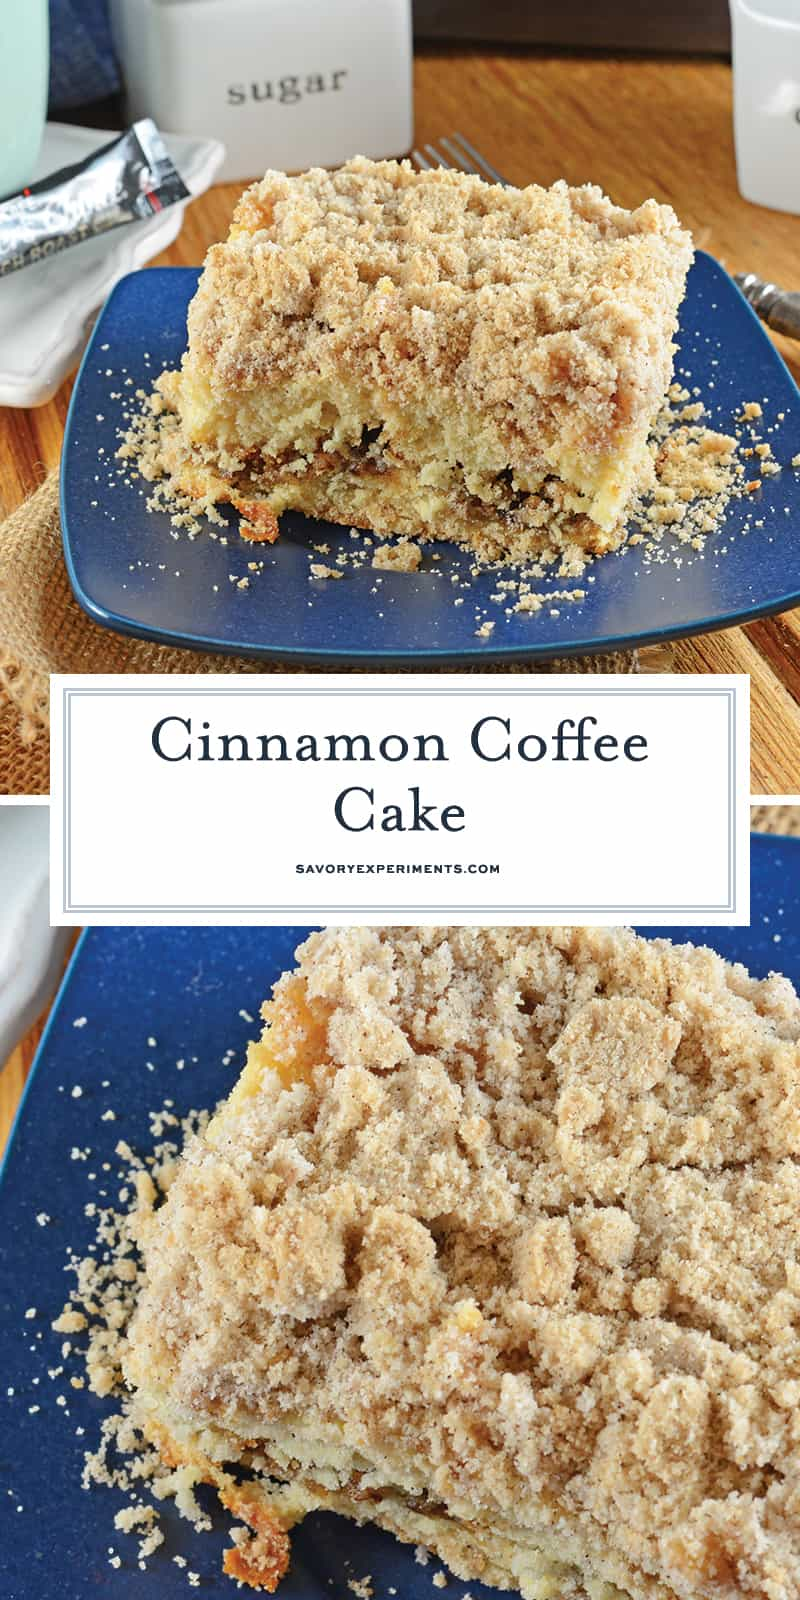 easy coffee cake recipes 20 delicious recipes with cream blueberries chocolate streusel